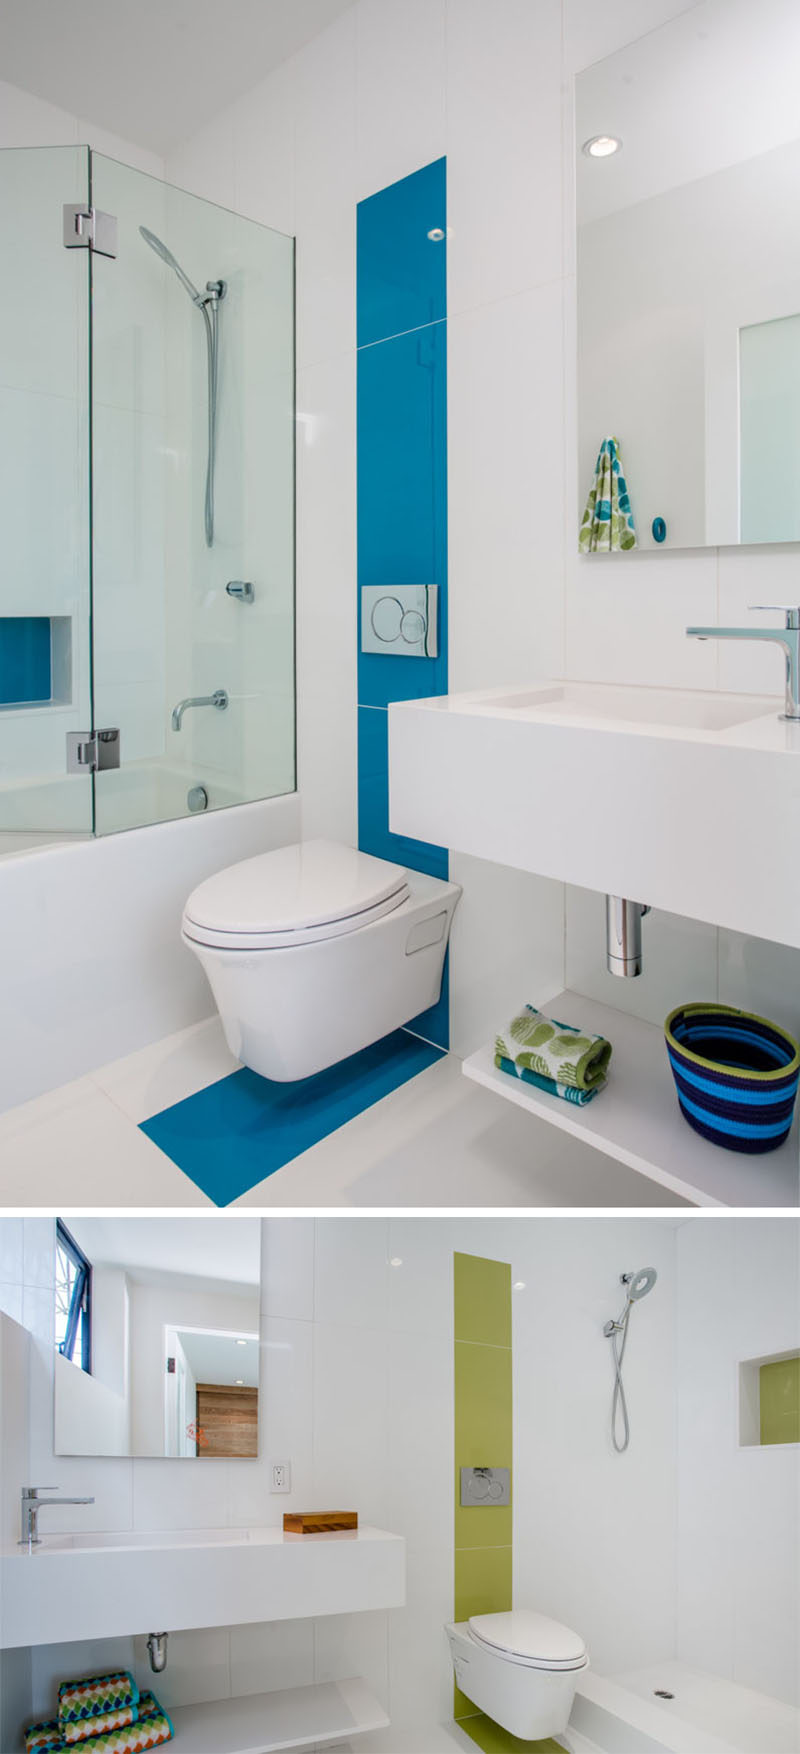 In these all-white tiled bathrooms, colorful tiles have been used to highlight an area, like the toilet and the built-in shelf in the shower.